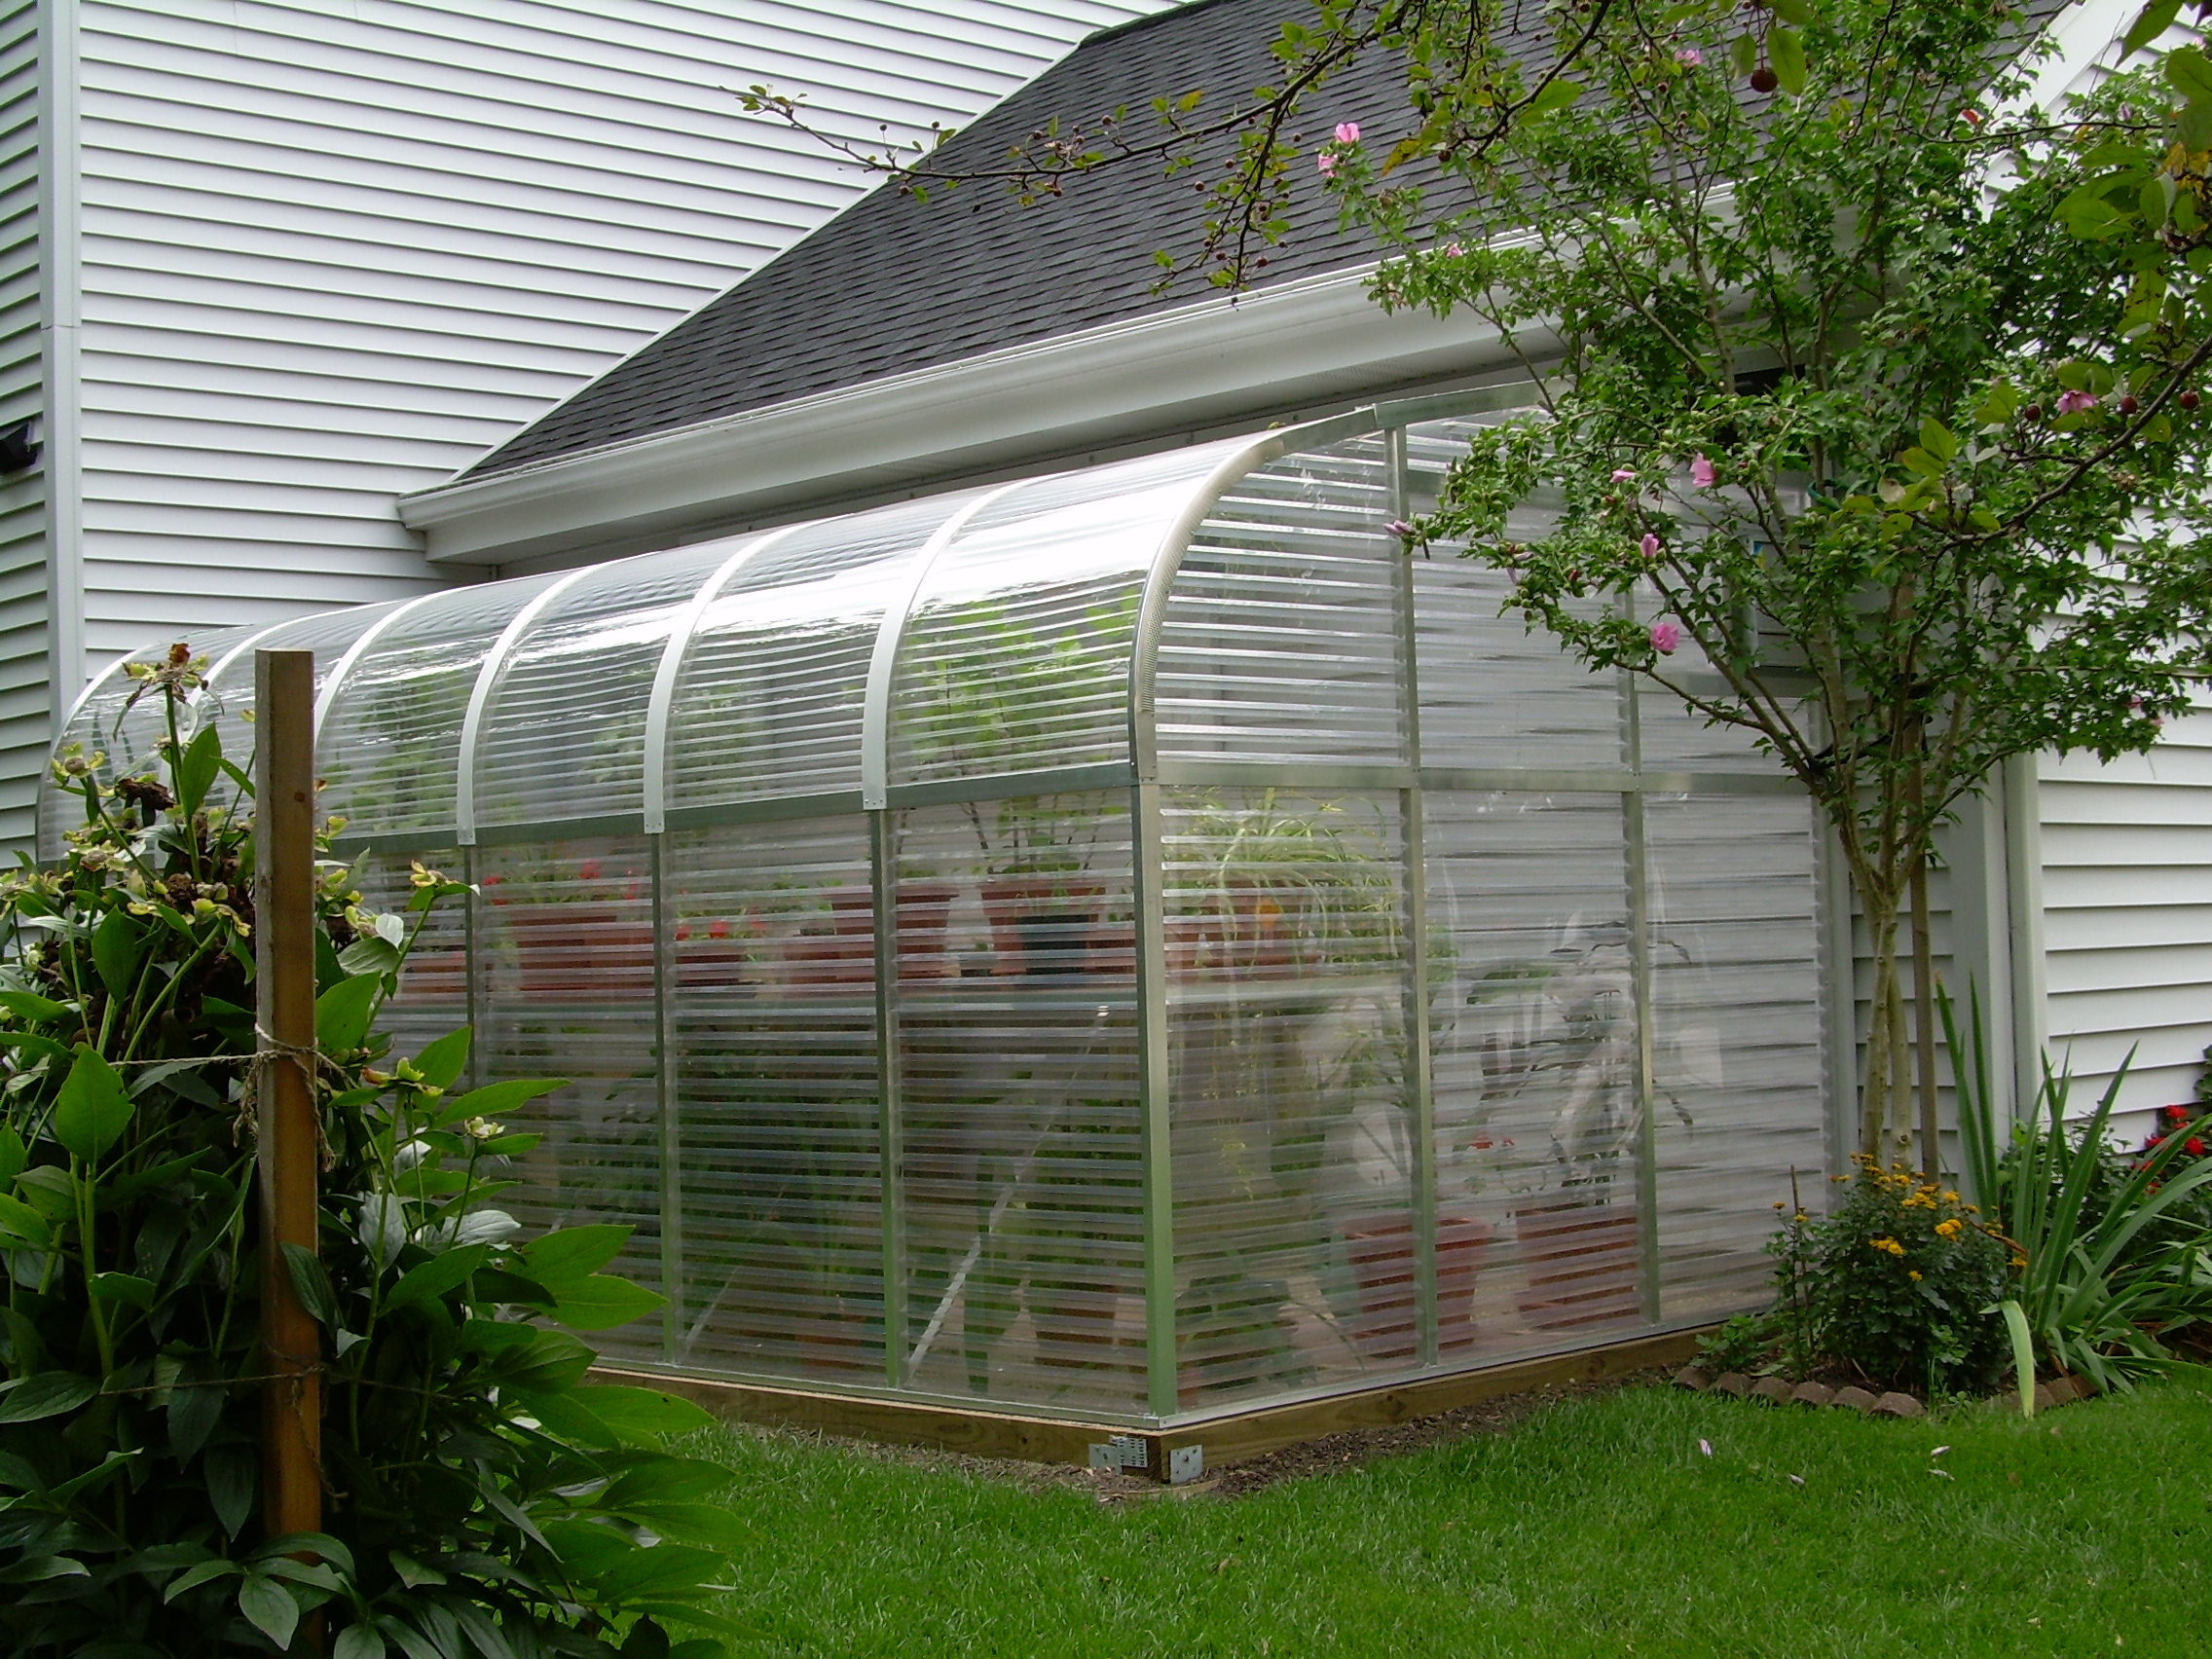 DIY Greenhouses Kits  Sunglo s Lean to DIY Greenhouse Kits The Greenhouse Gardener